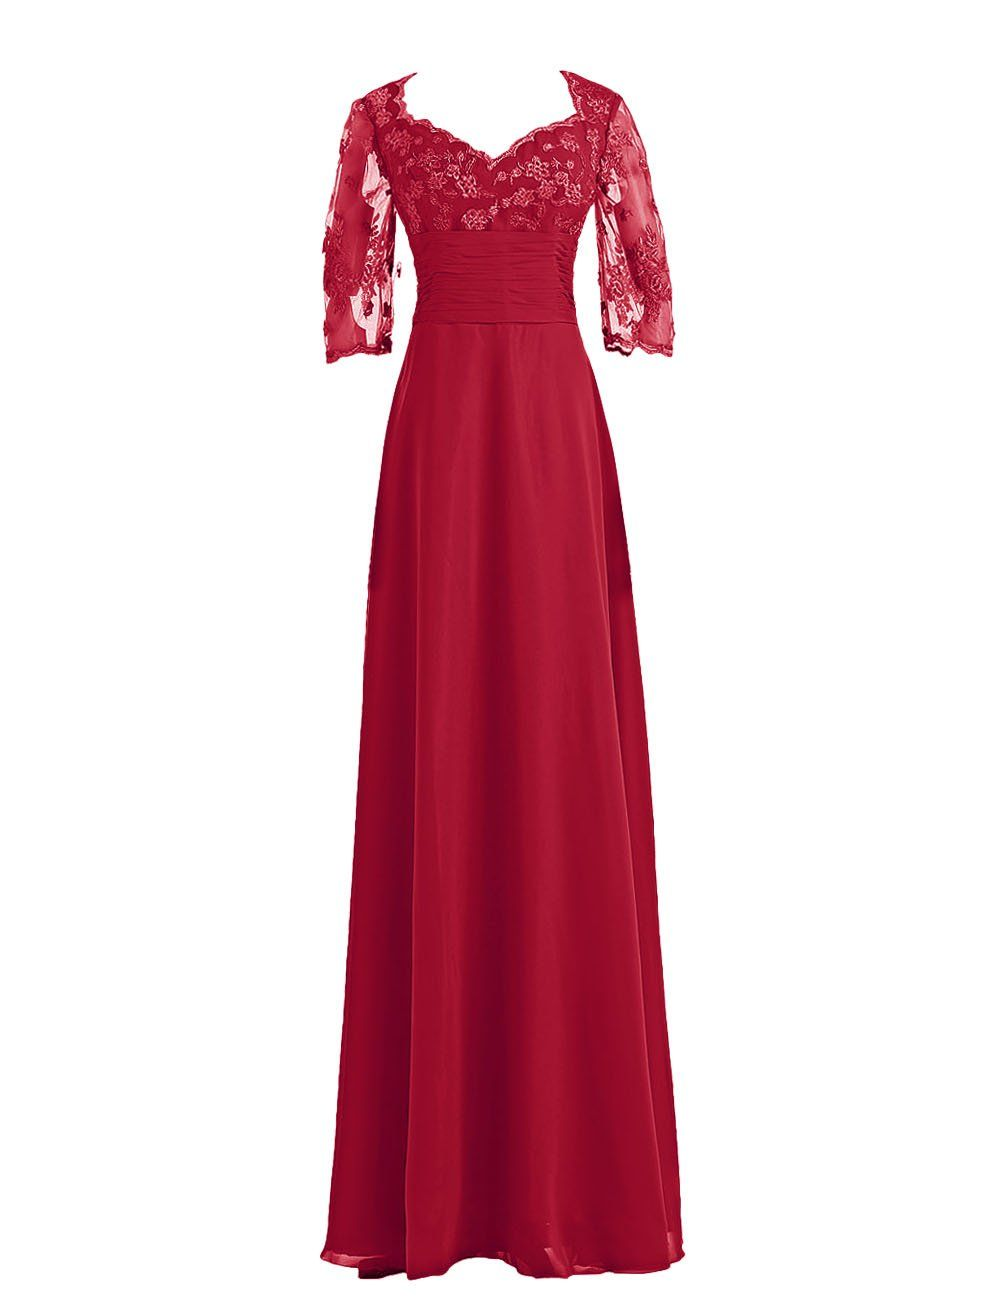 Wedding dresses for mother of the bride  Diyouth  Lace Sleeves Chiffon Mother of the Bride Dress at Amazon